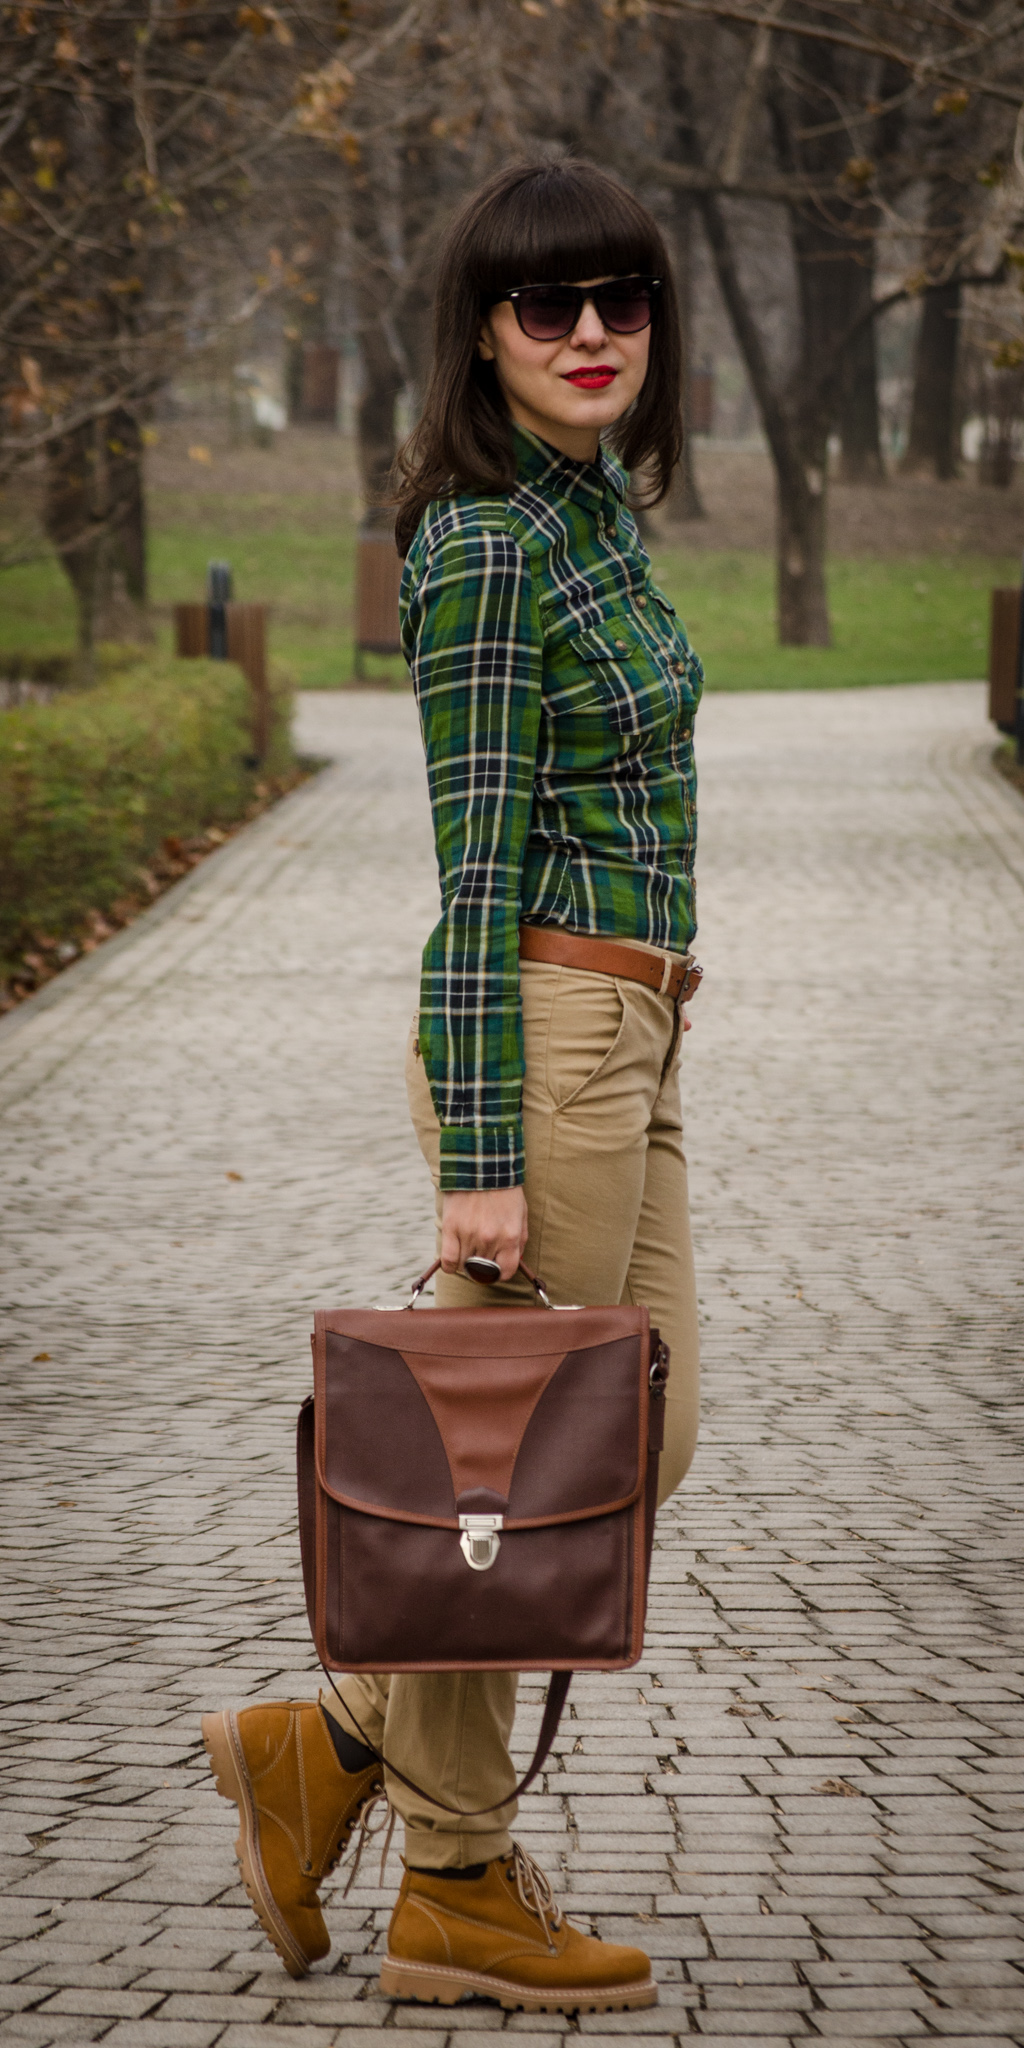 brown pants h&m red jacket miniprix camel worker boots romanian producer brown thrifted satchel bag green tartan shirt bangs